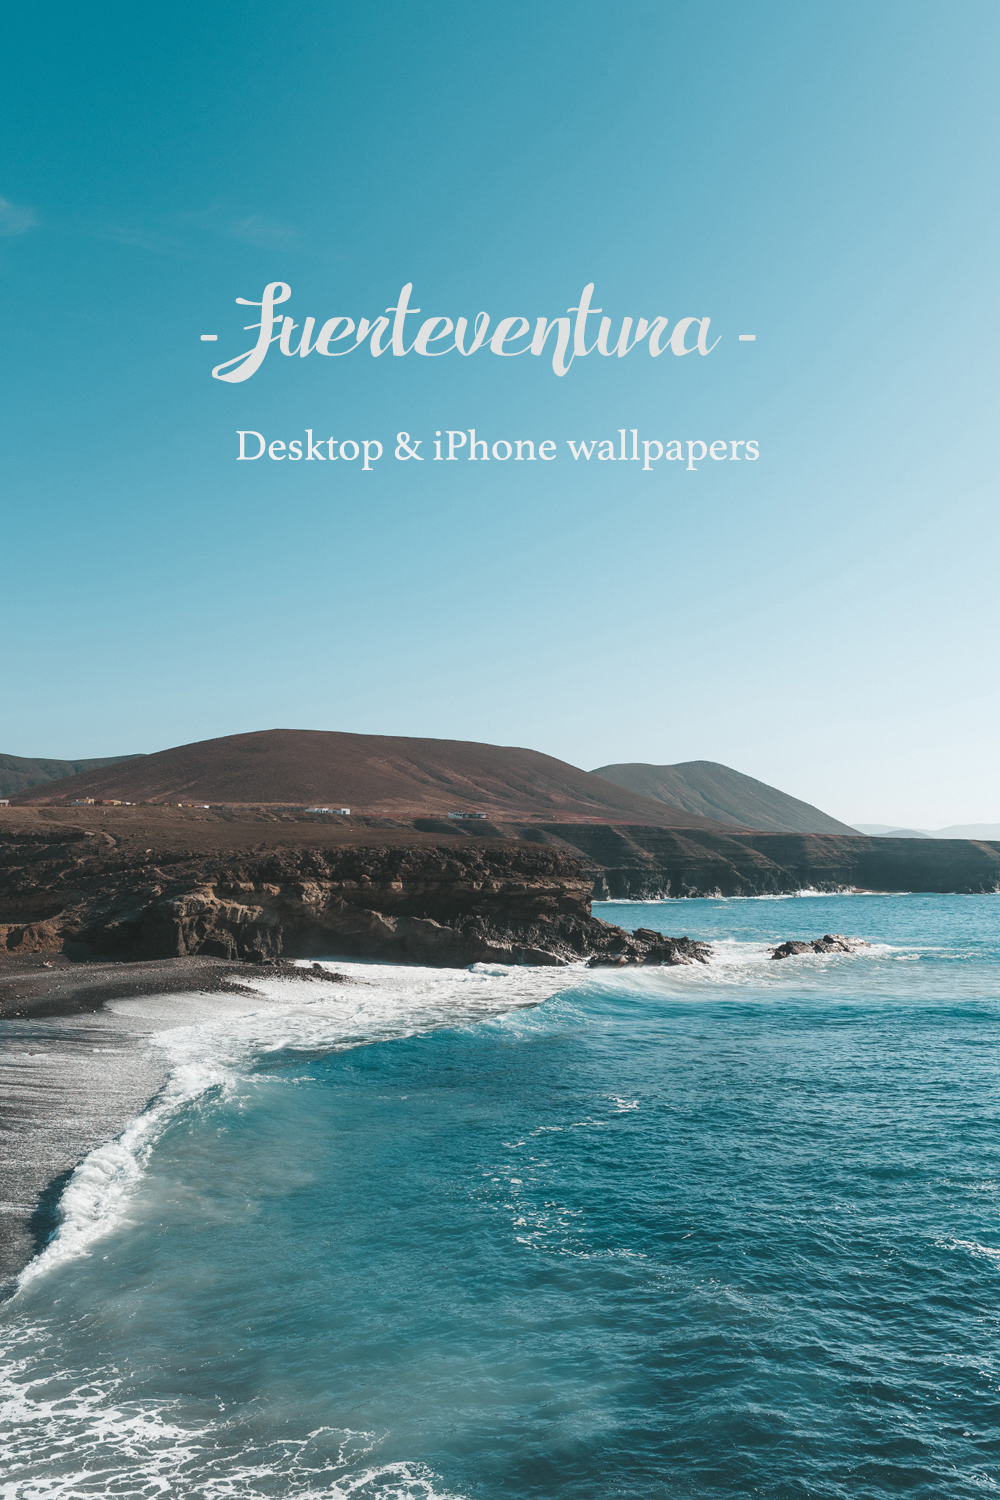 Fuerteventura Spain Canary Islands Desktop & iPhone wallpapers